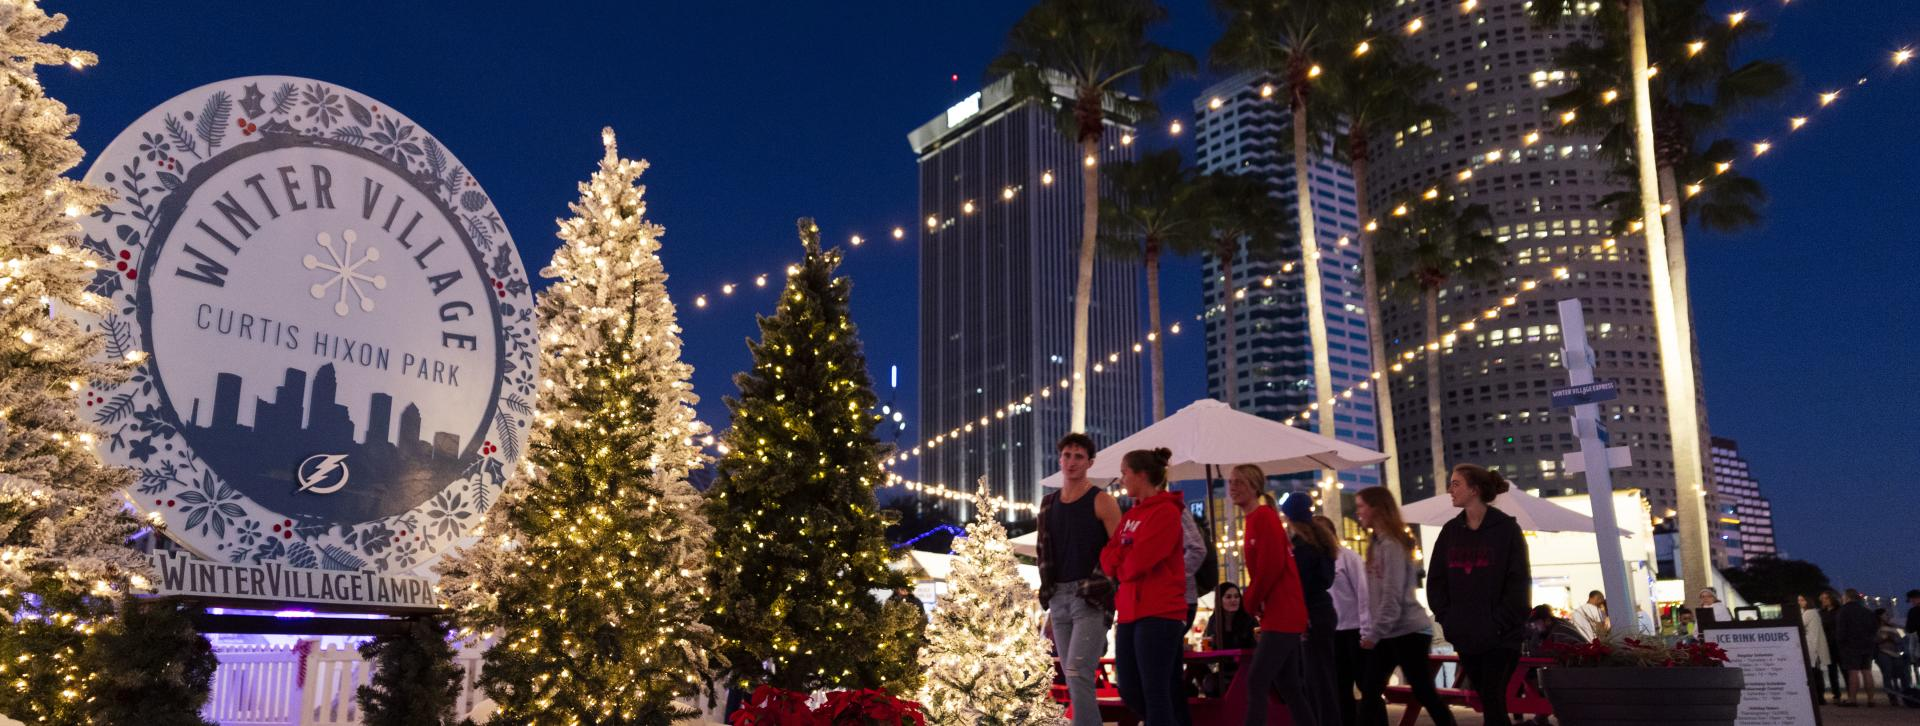 Christmas Shows Tampa 2020 Holiday Season and New Year's Events